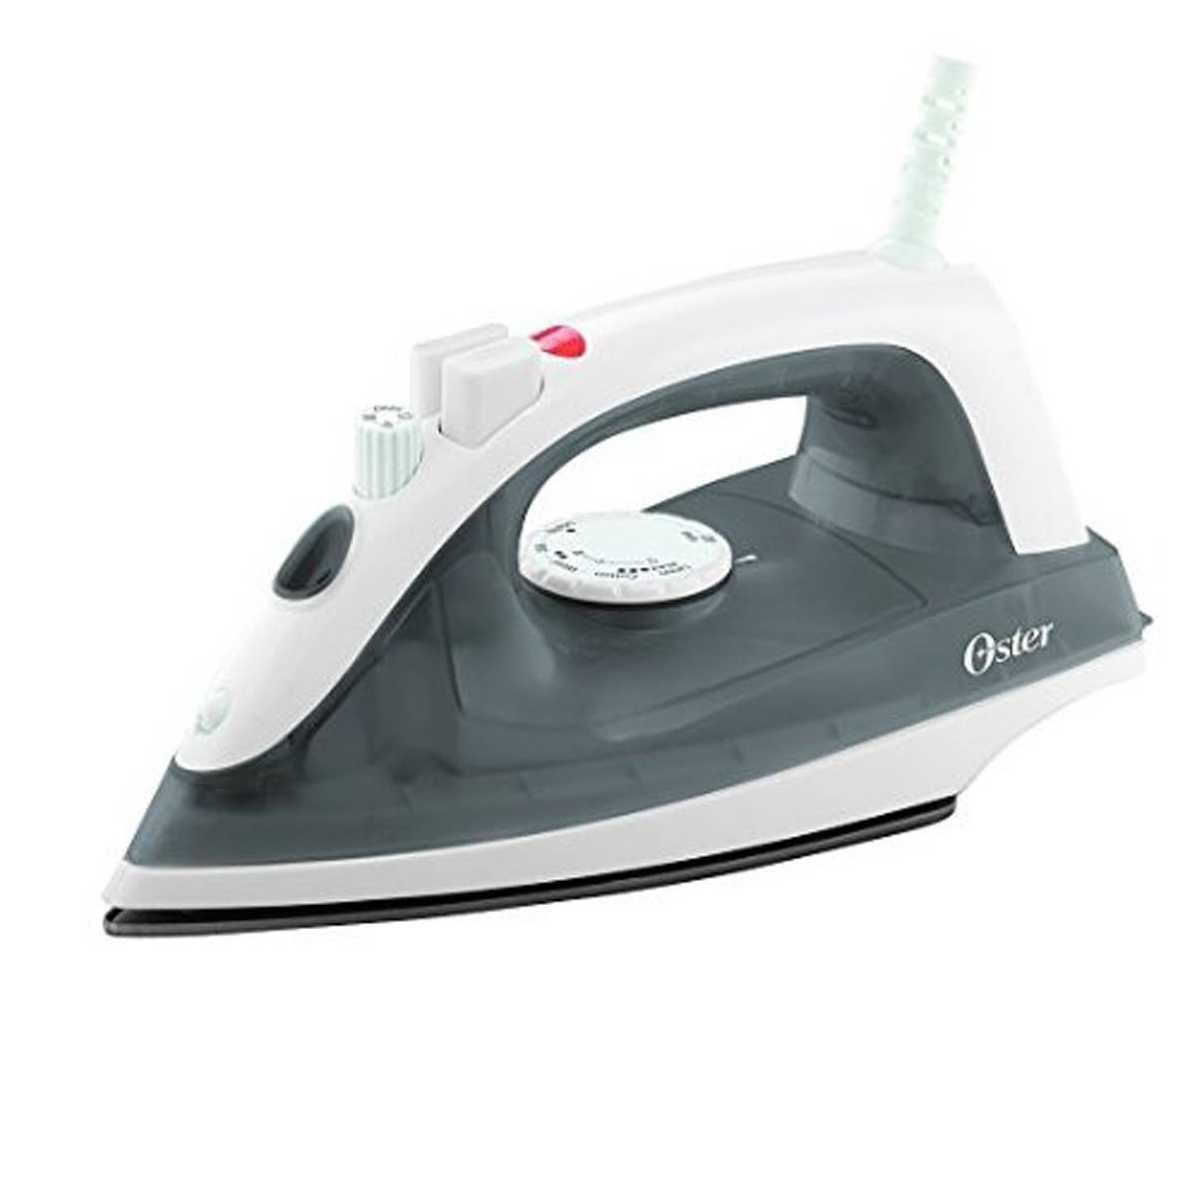 Picture of Oster Steam Iron 4410